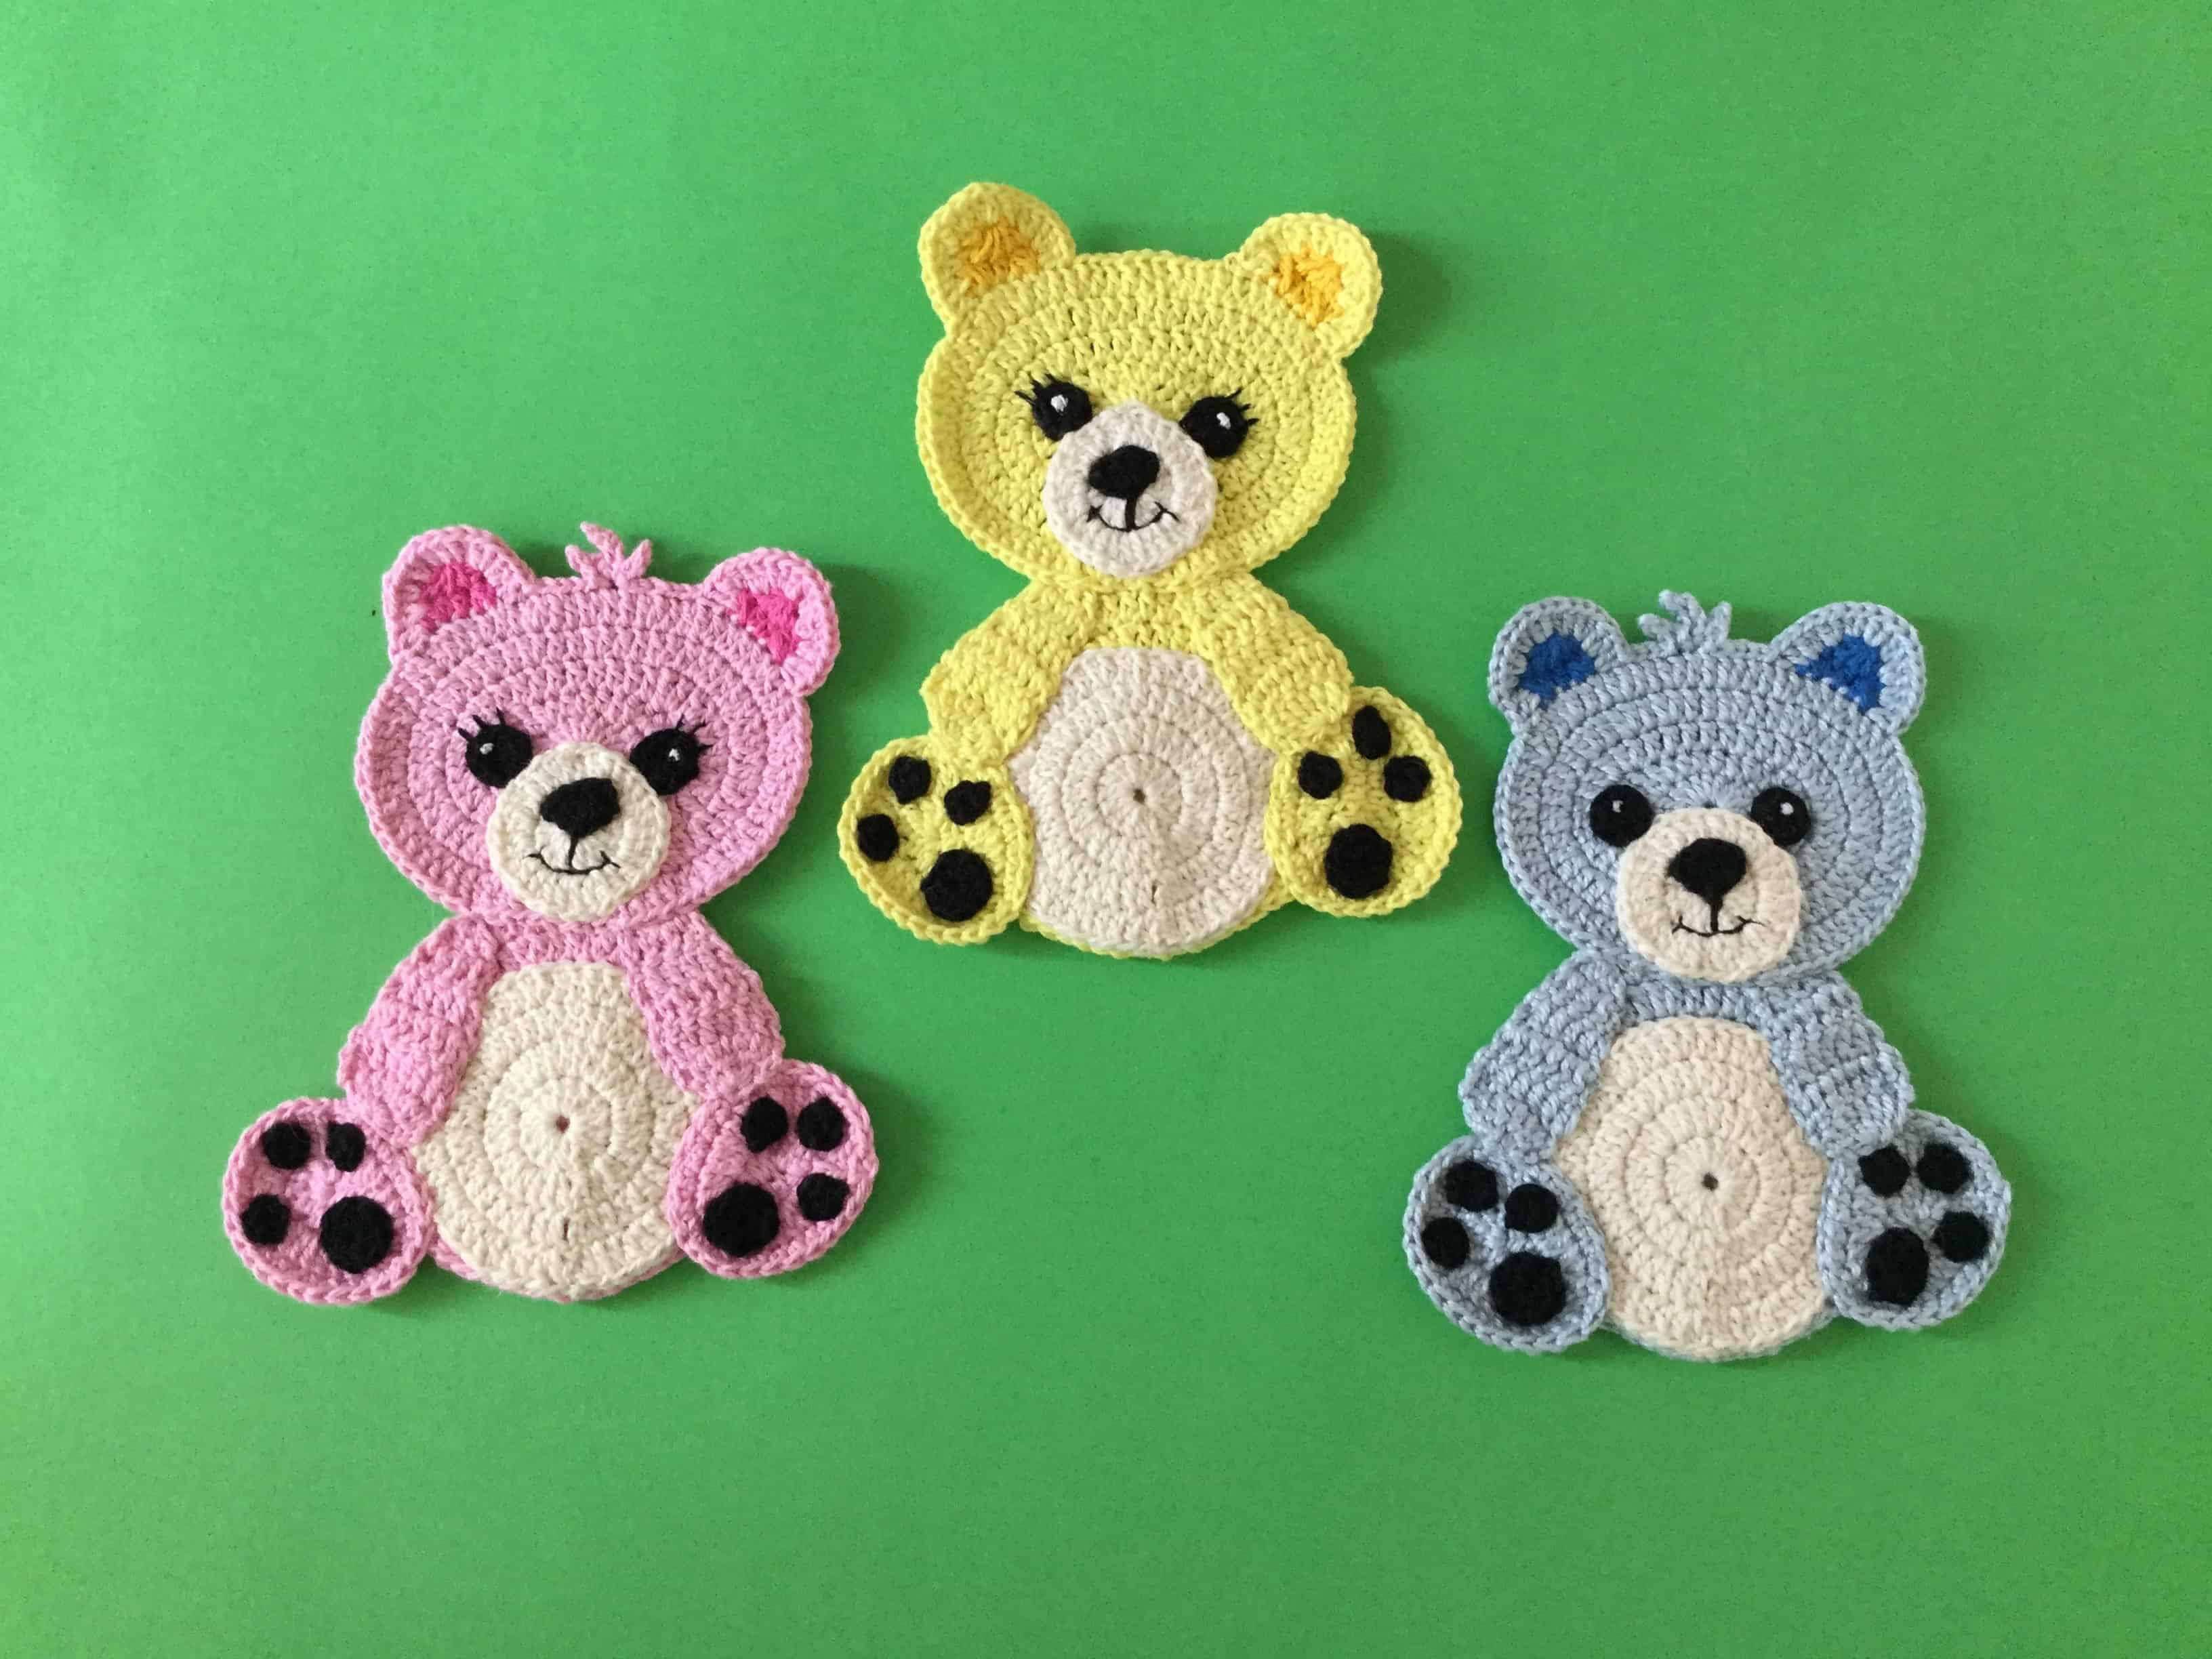 Teddy Bear Crochet Pattern Crochet Teddy Bear Pattern | Etsy | 2448x3264